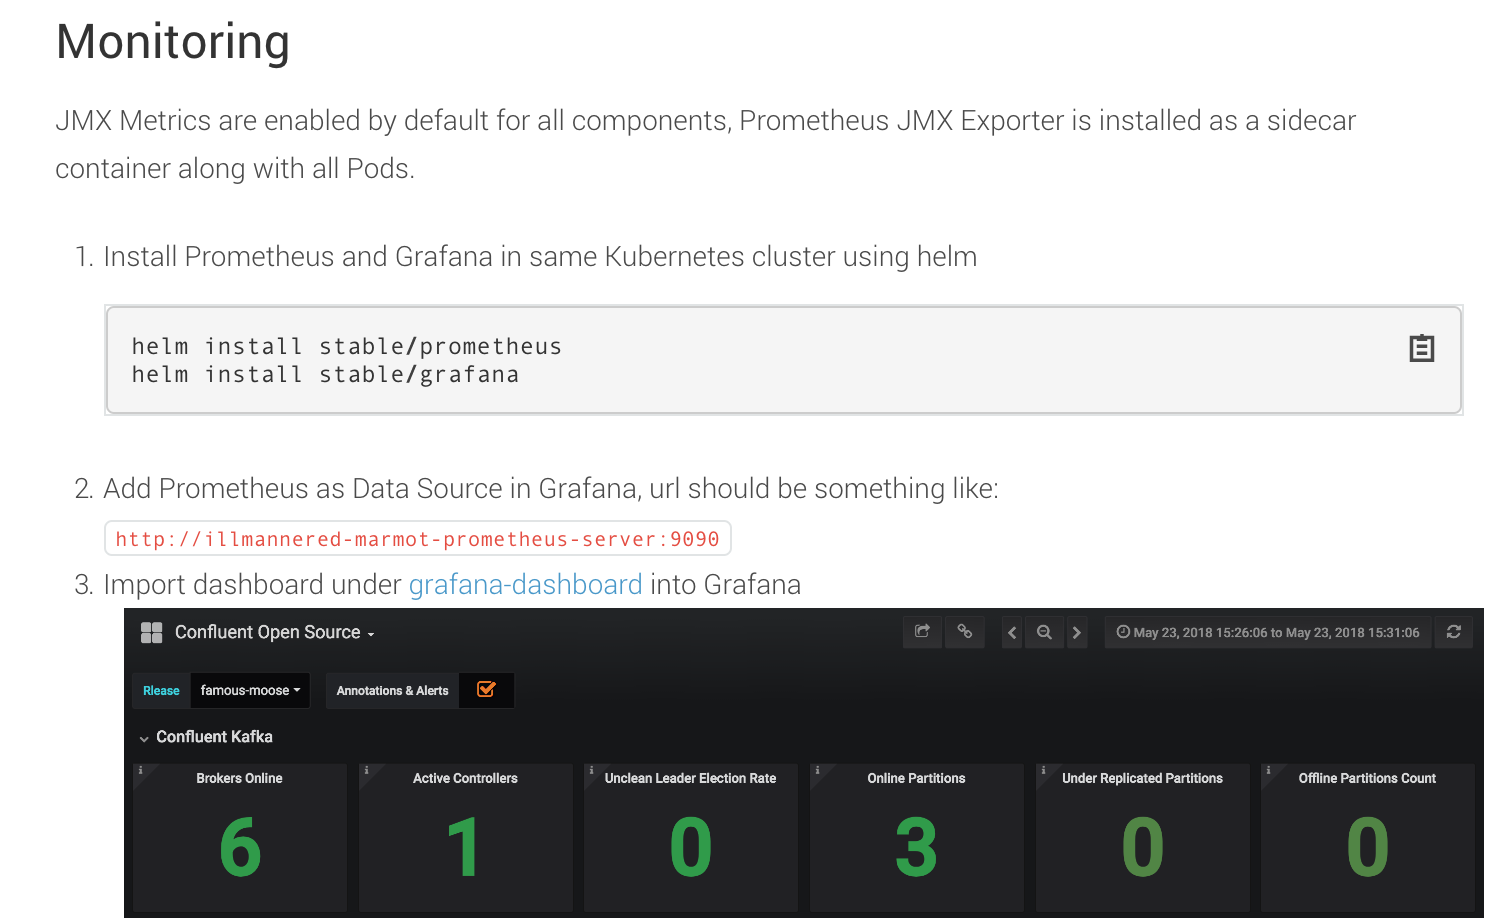 Documentation for monitoring part (Grafana) is incorrect and